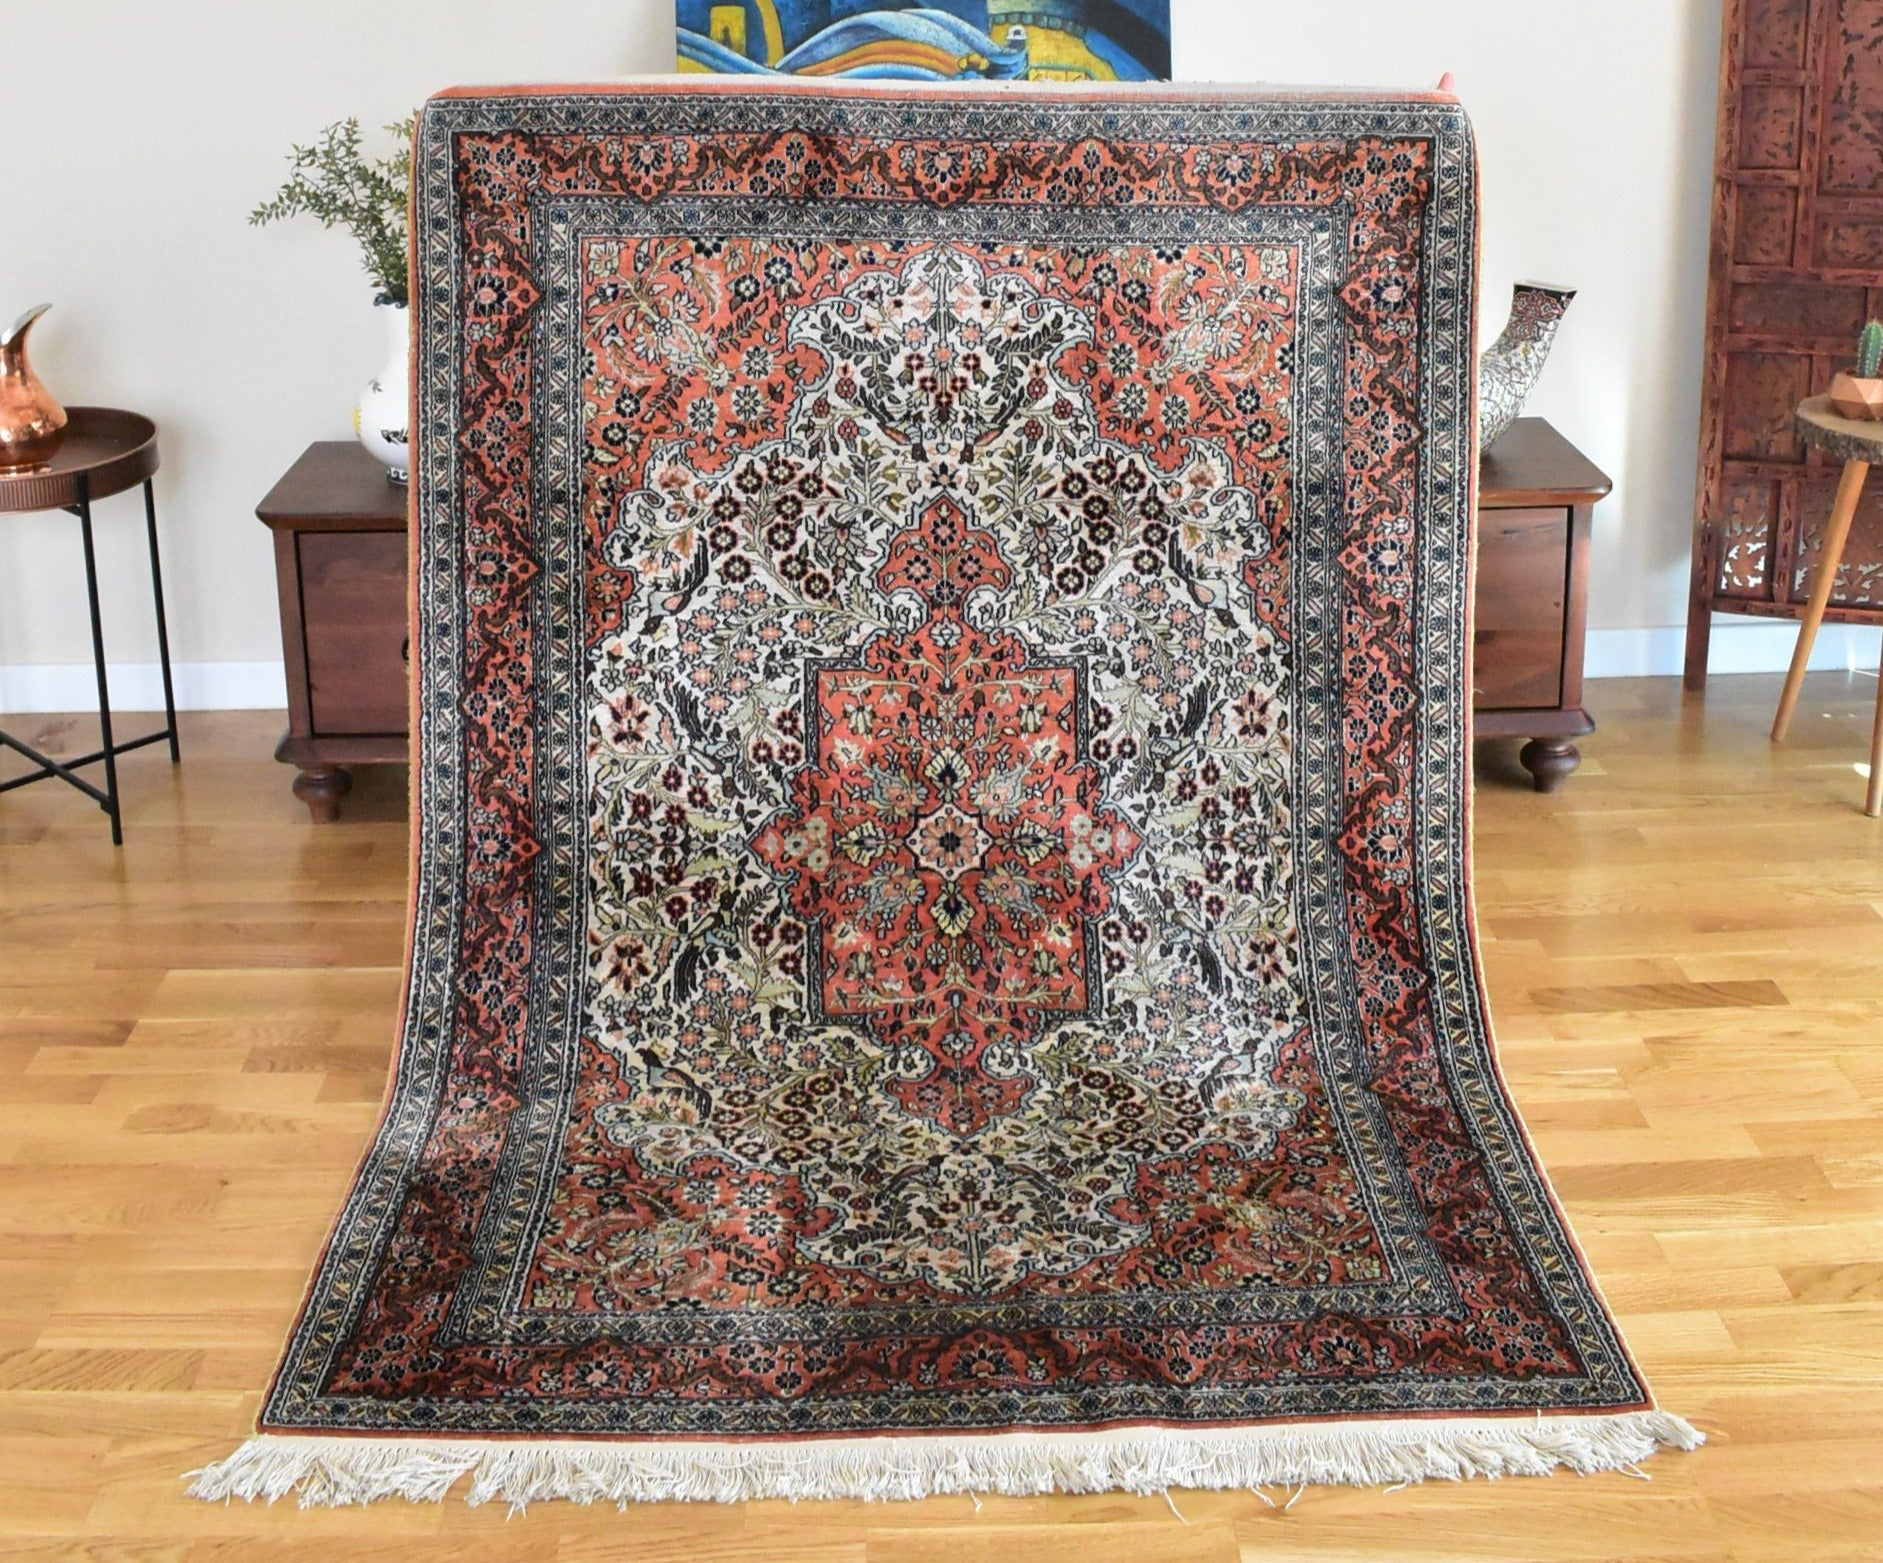 Kashmir Silk Carpet 4,1